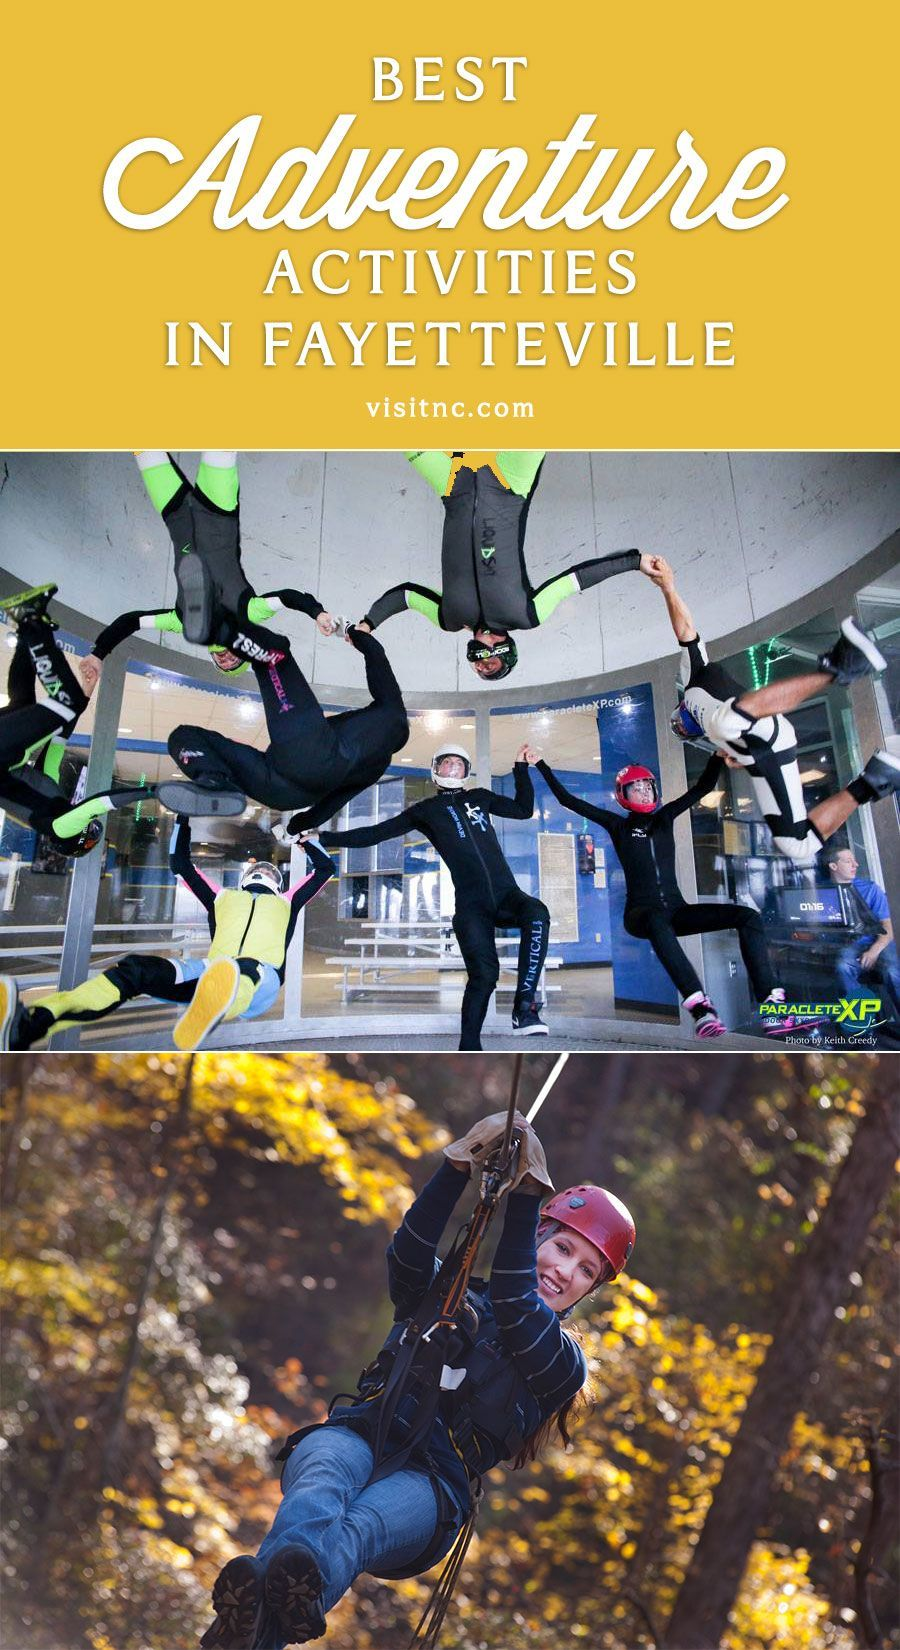 Plan A Vacation Full Of Adventure Including Skydiving And Zip Lining During Your Visit In 2020 Cities In North Carolina Fort Bragg North Carolina North Carolina Travel